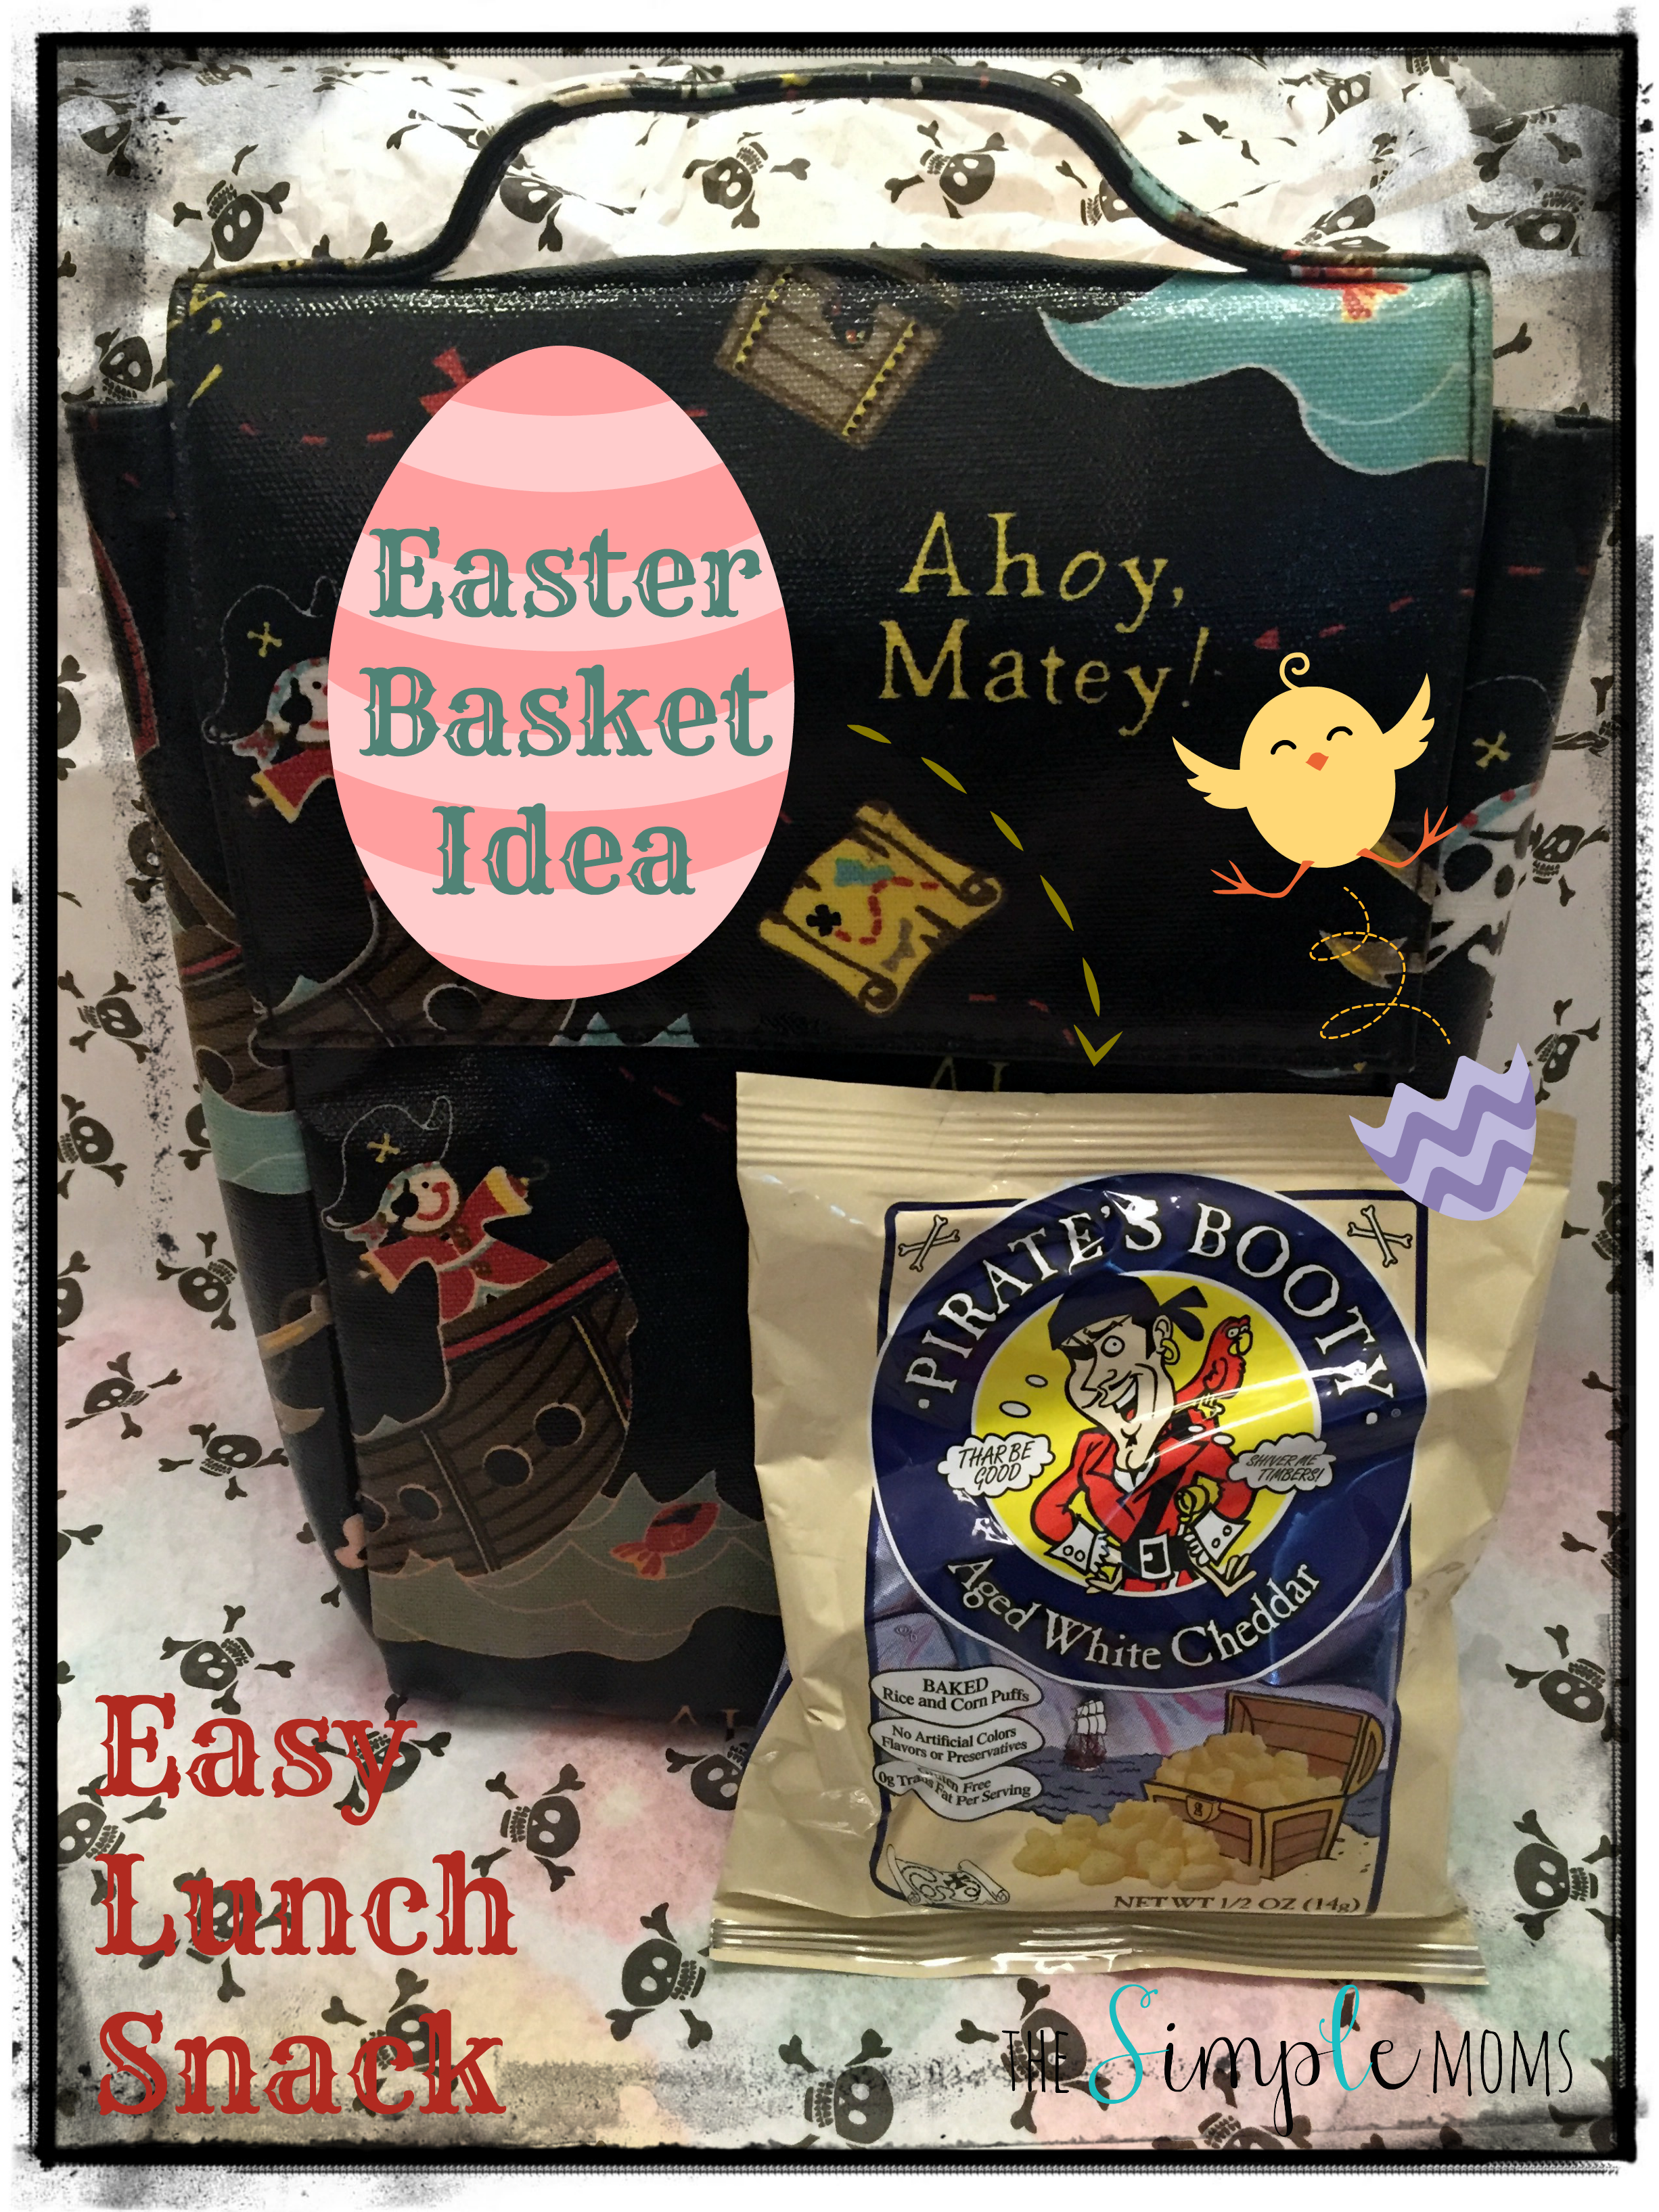 Pirates booty lunch help easter basket idea gluten free ideas negle Image collections